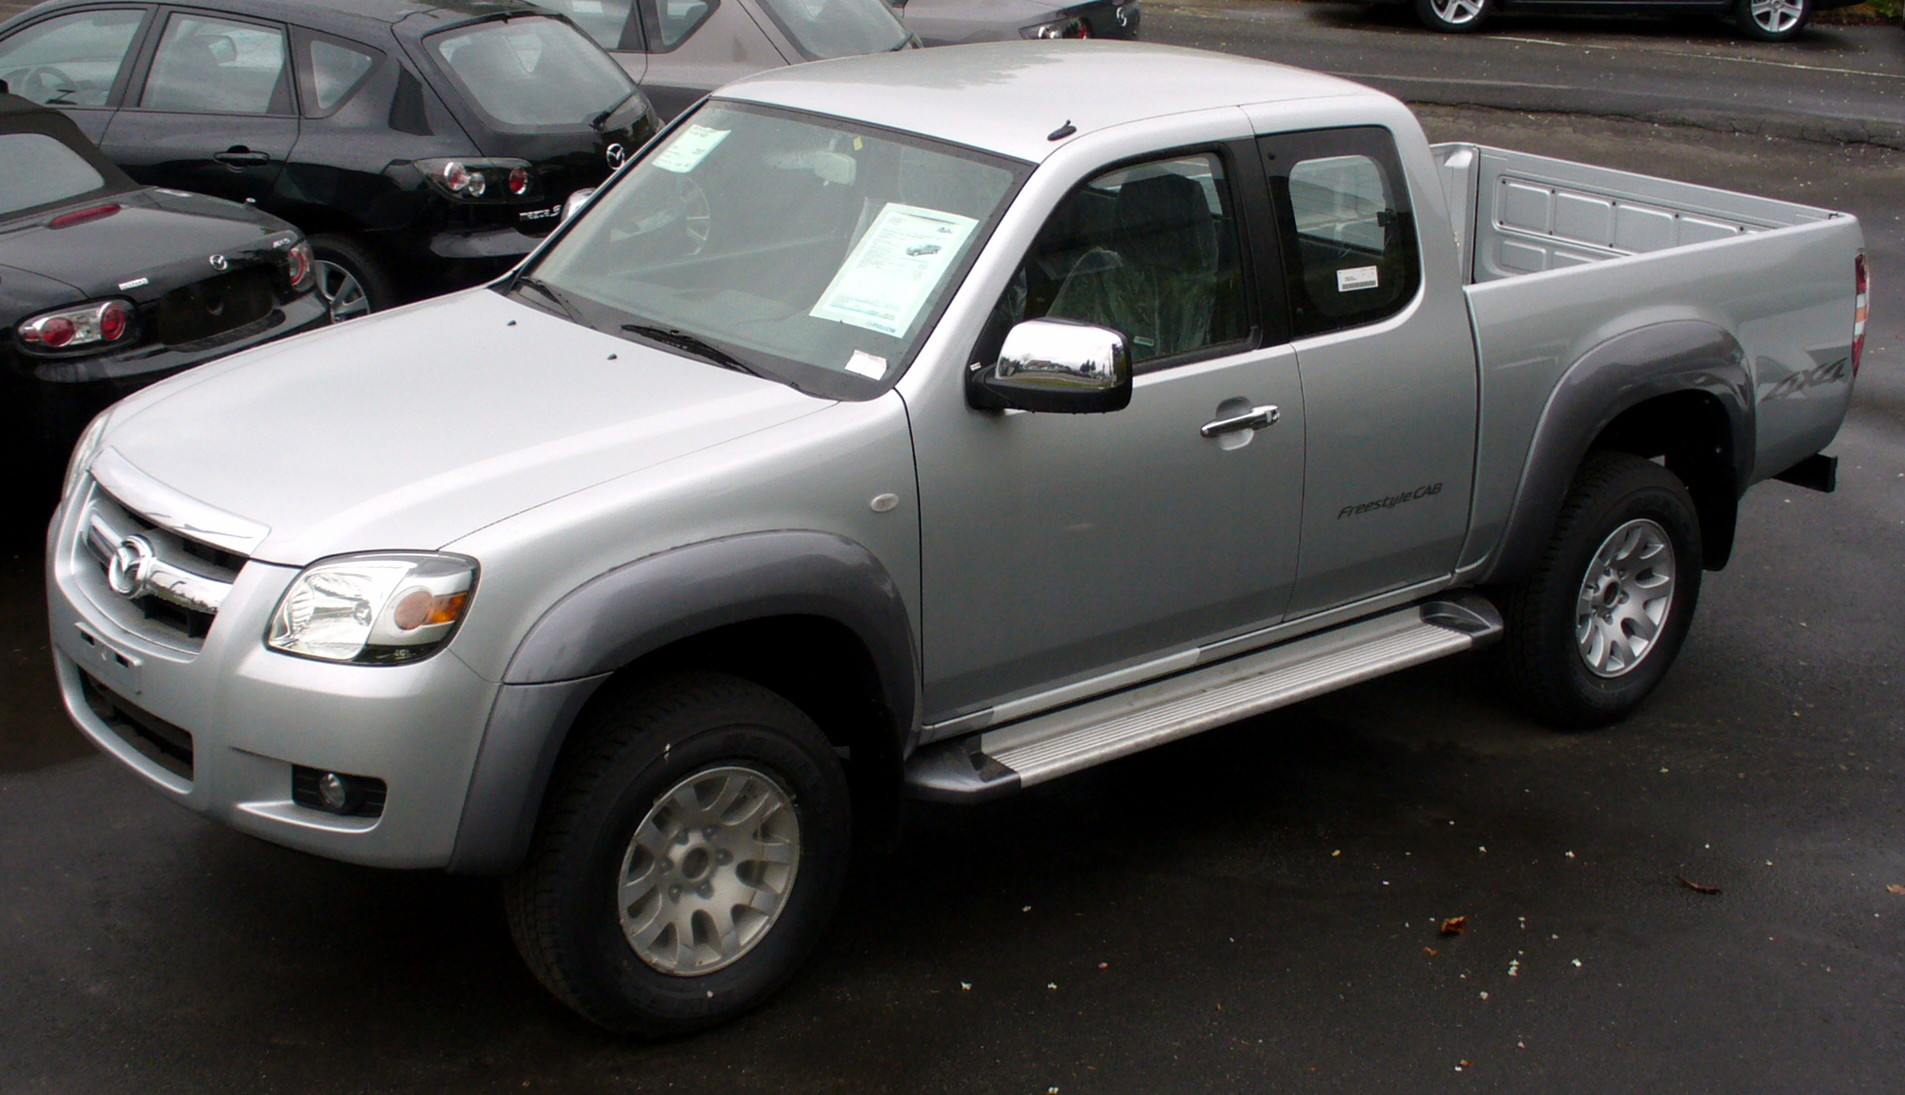 http://auto-database.com/image/mazda-bt-50-2009-pictures-155721.jpg